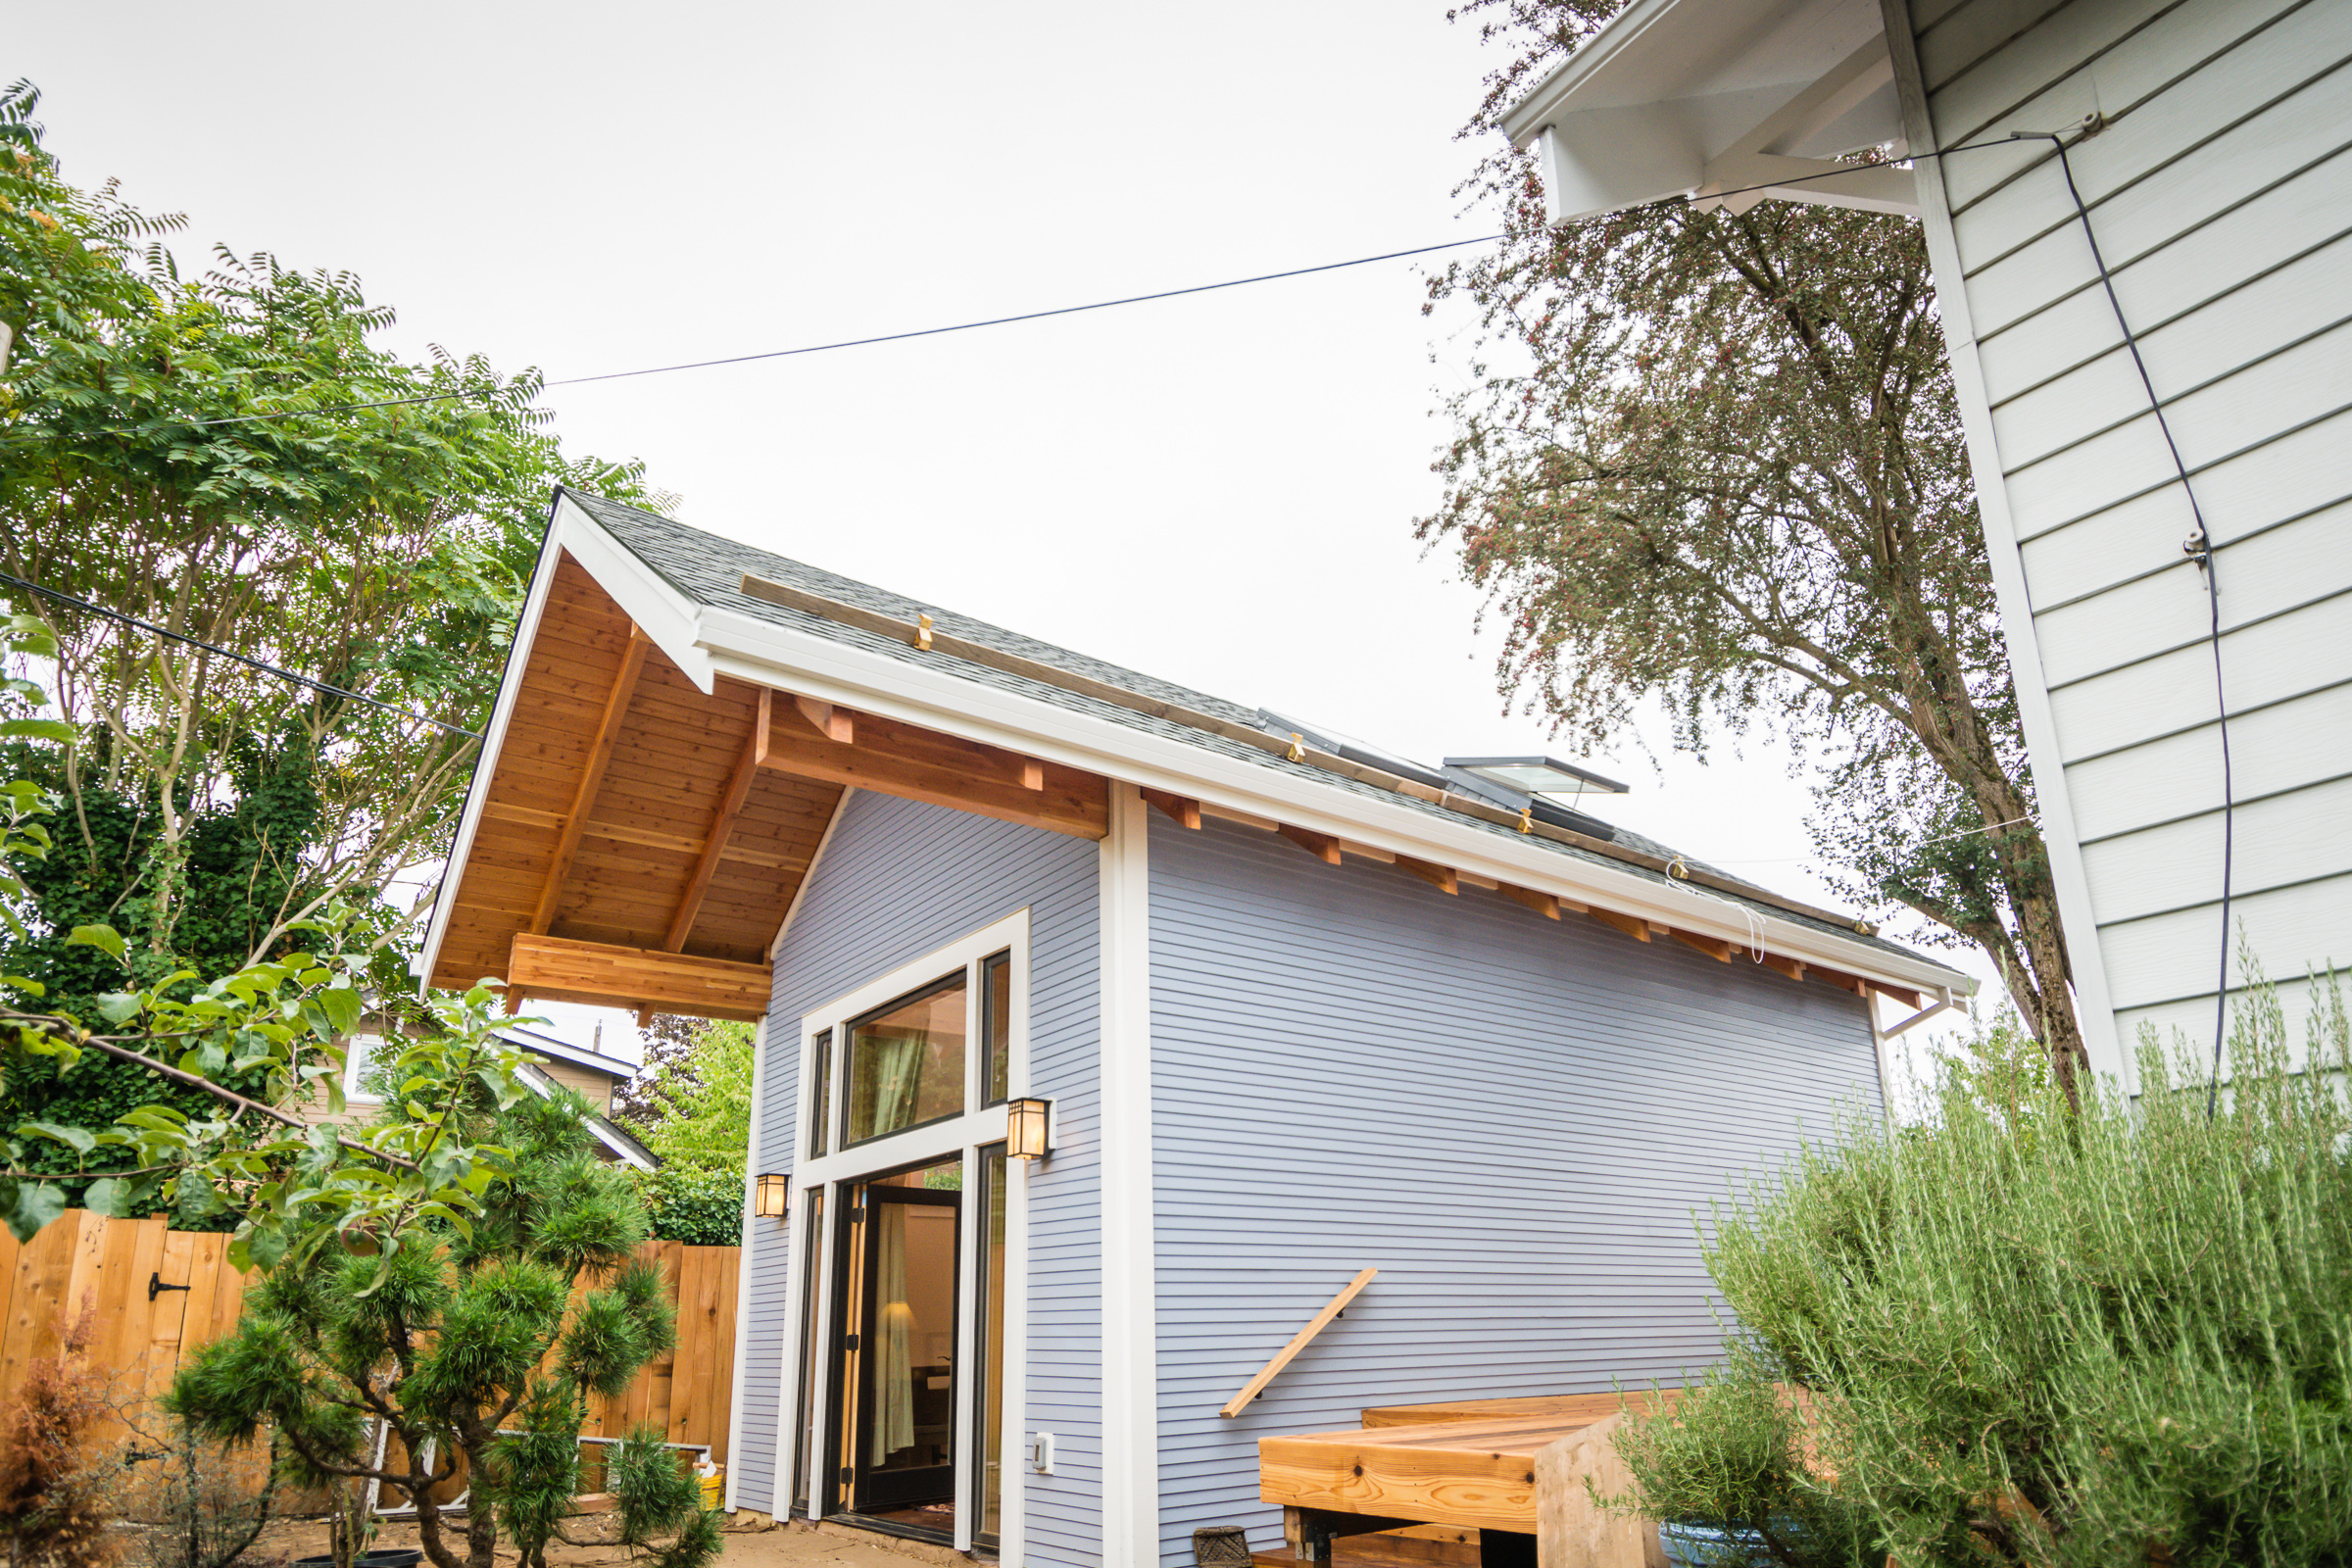 Build small live large portland s accessory dwelling for Adu designs